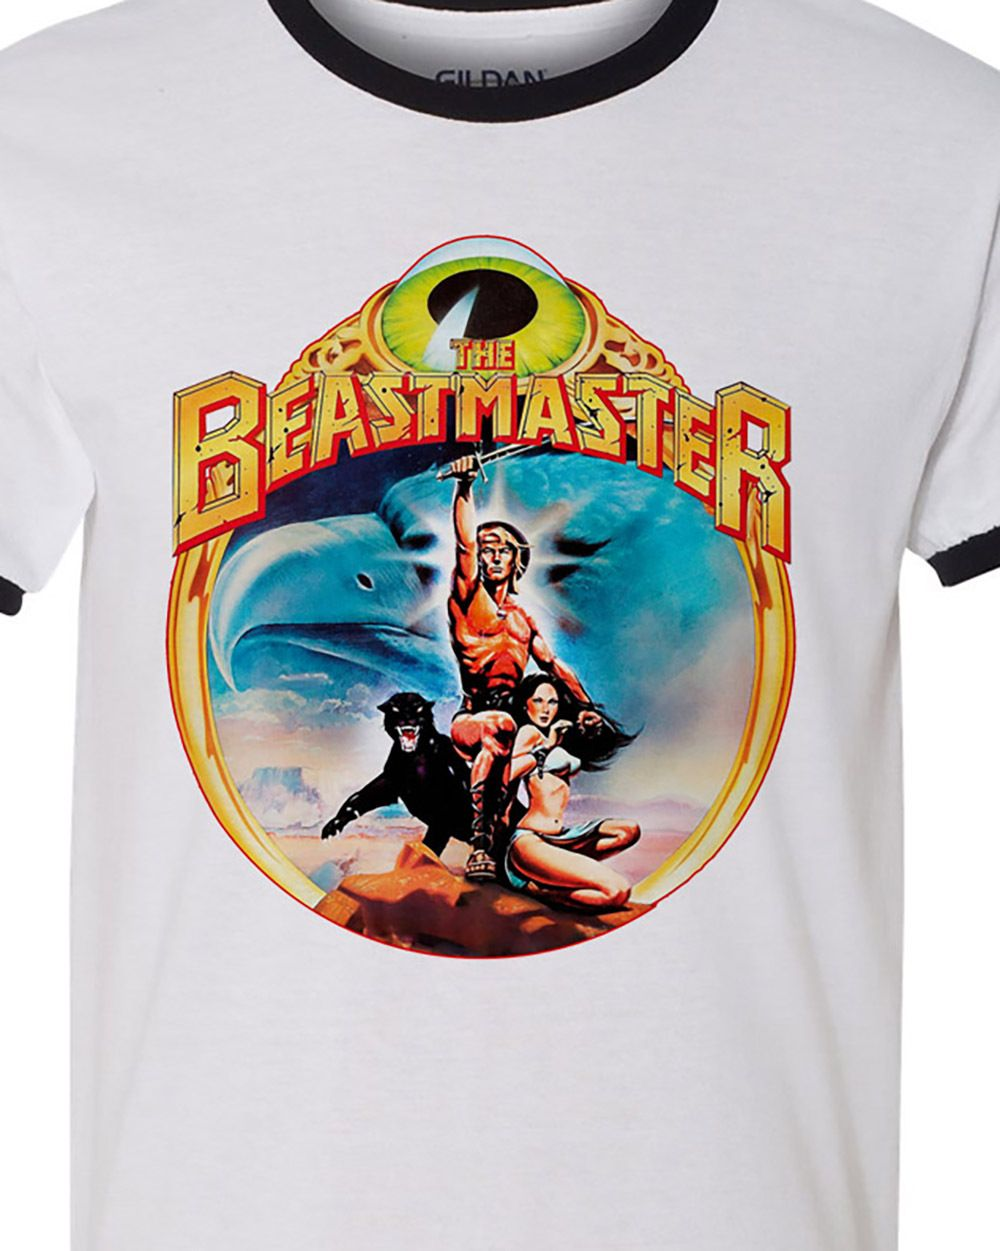 The beastmaster retro vintage 80 s sci fi t shirt for sale